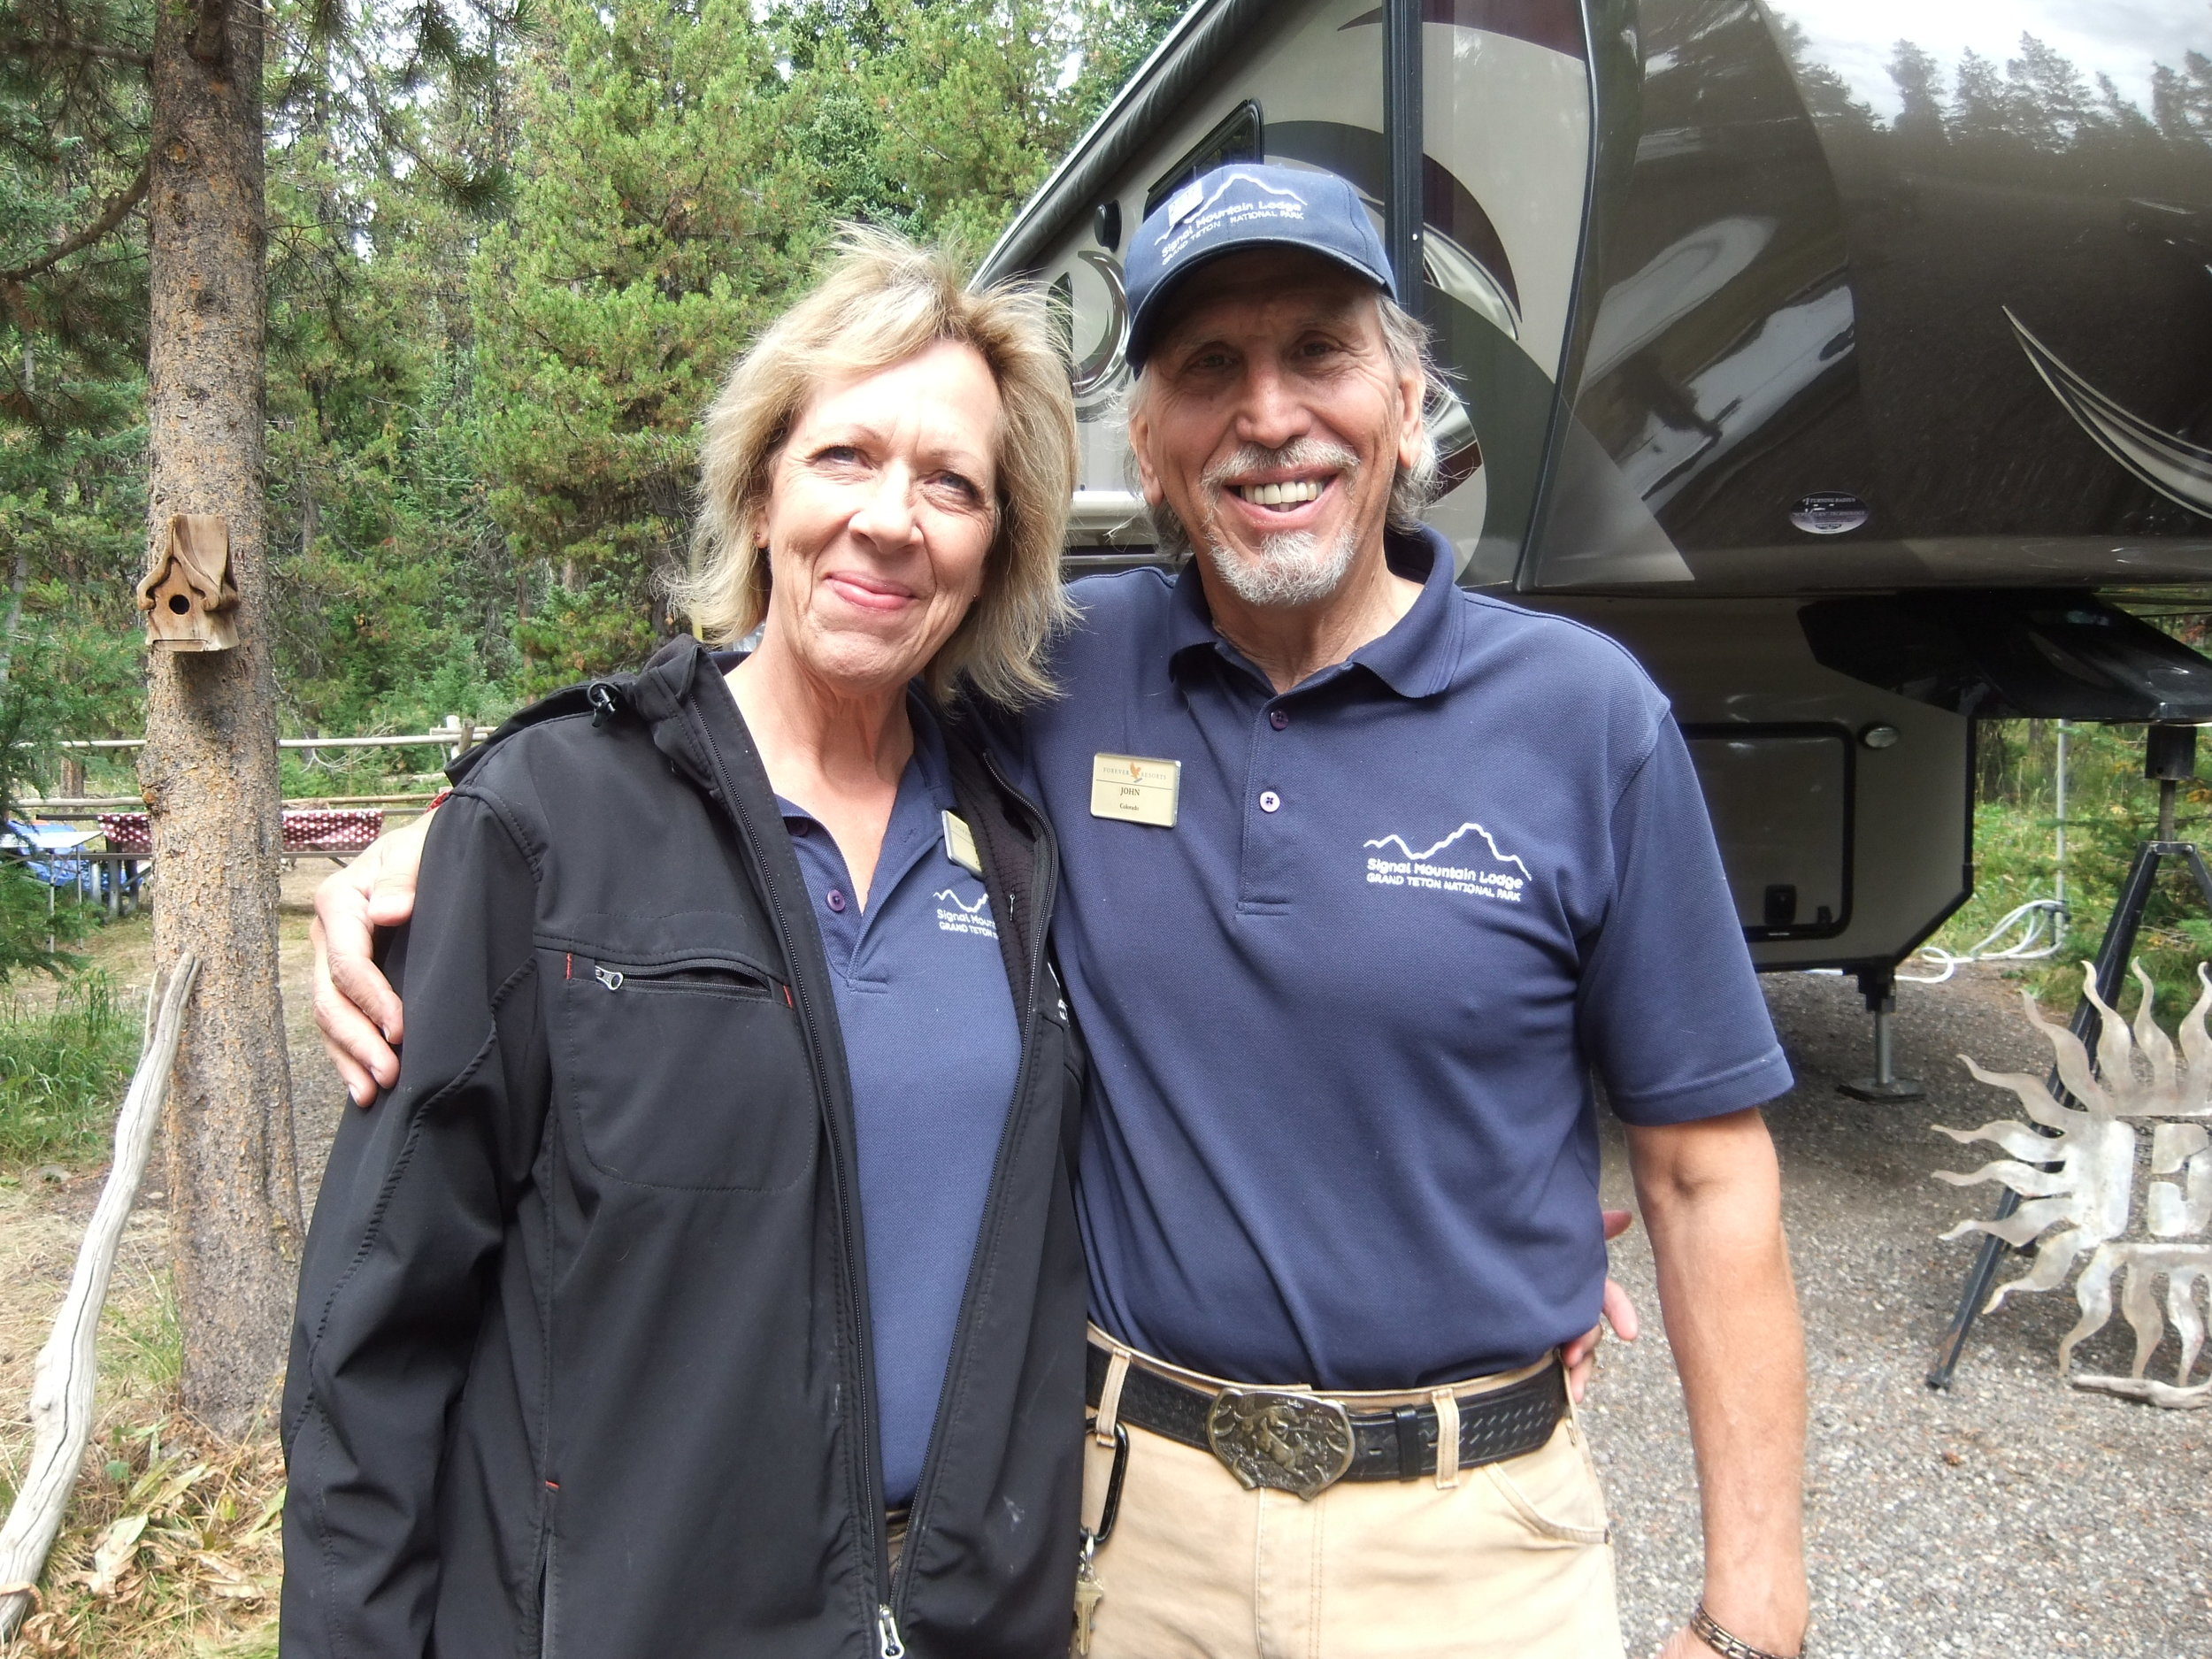 Lizard Creek Campground staff